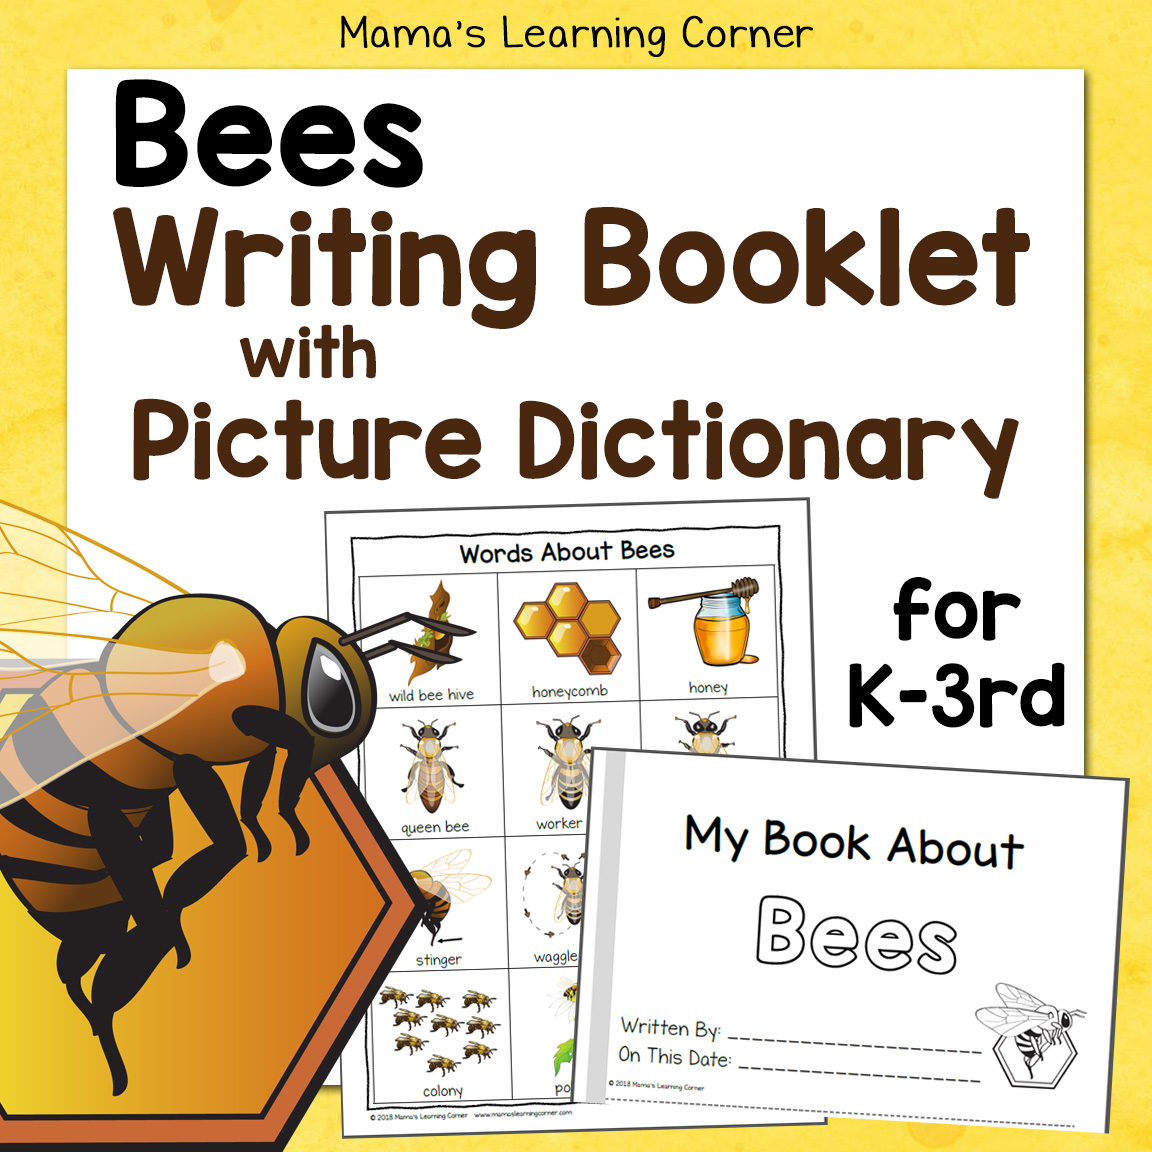 Bees Writing Booklet With Picture Dictionary